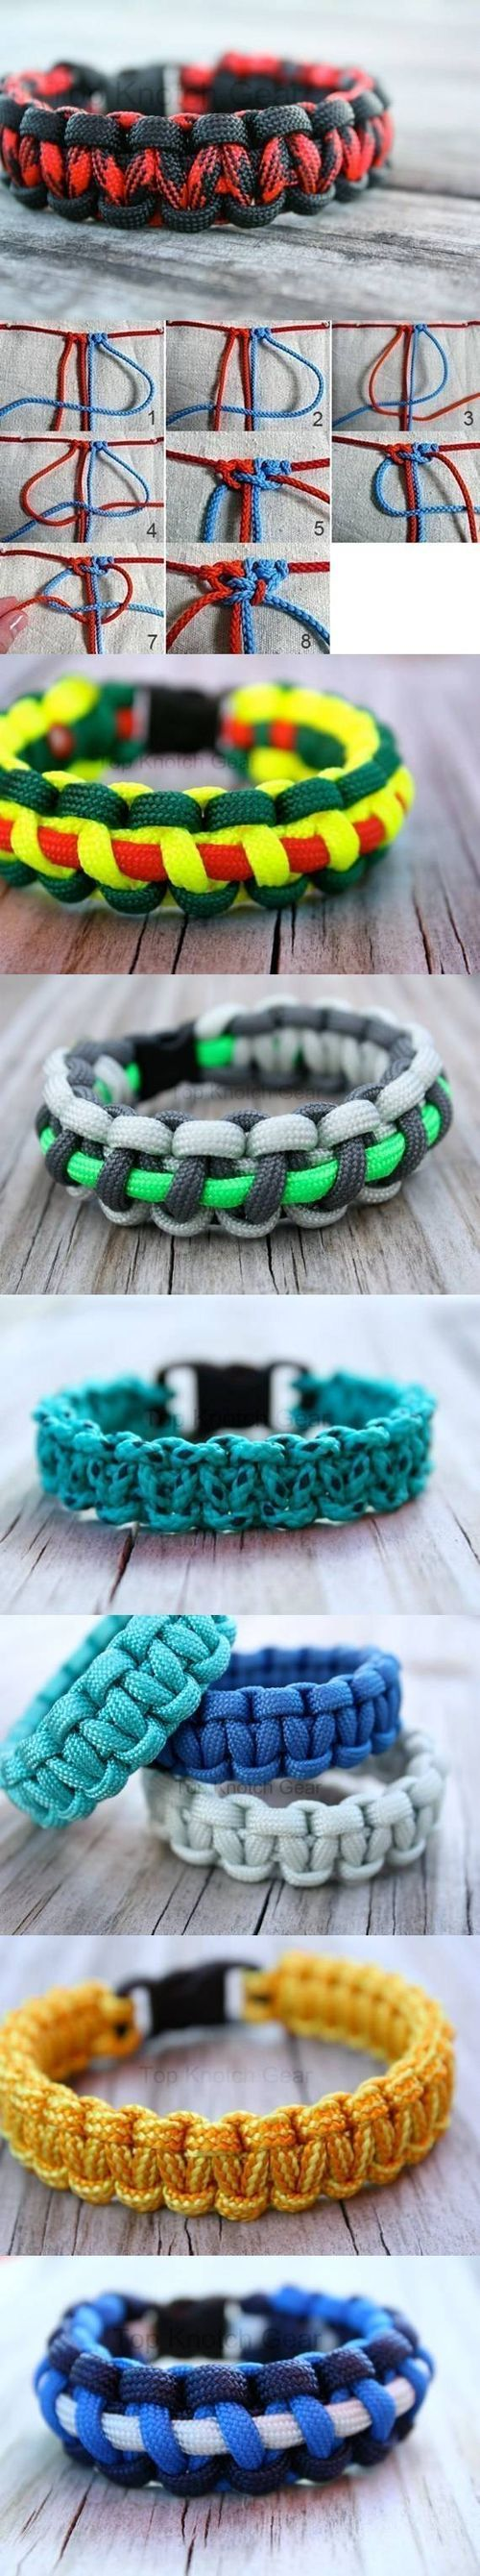 DIY Root Node Bracelets DIY Projects / UsefulDIY.com on imgfave